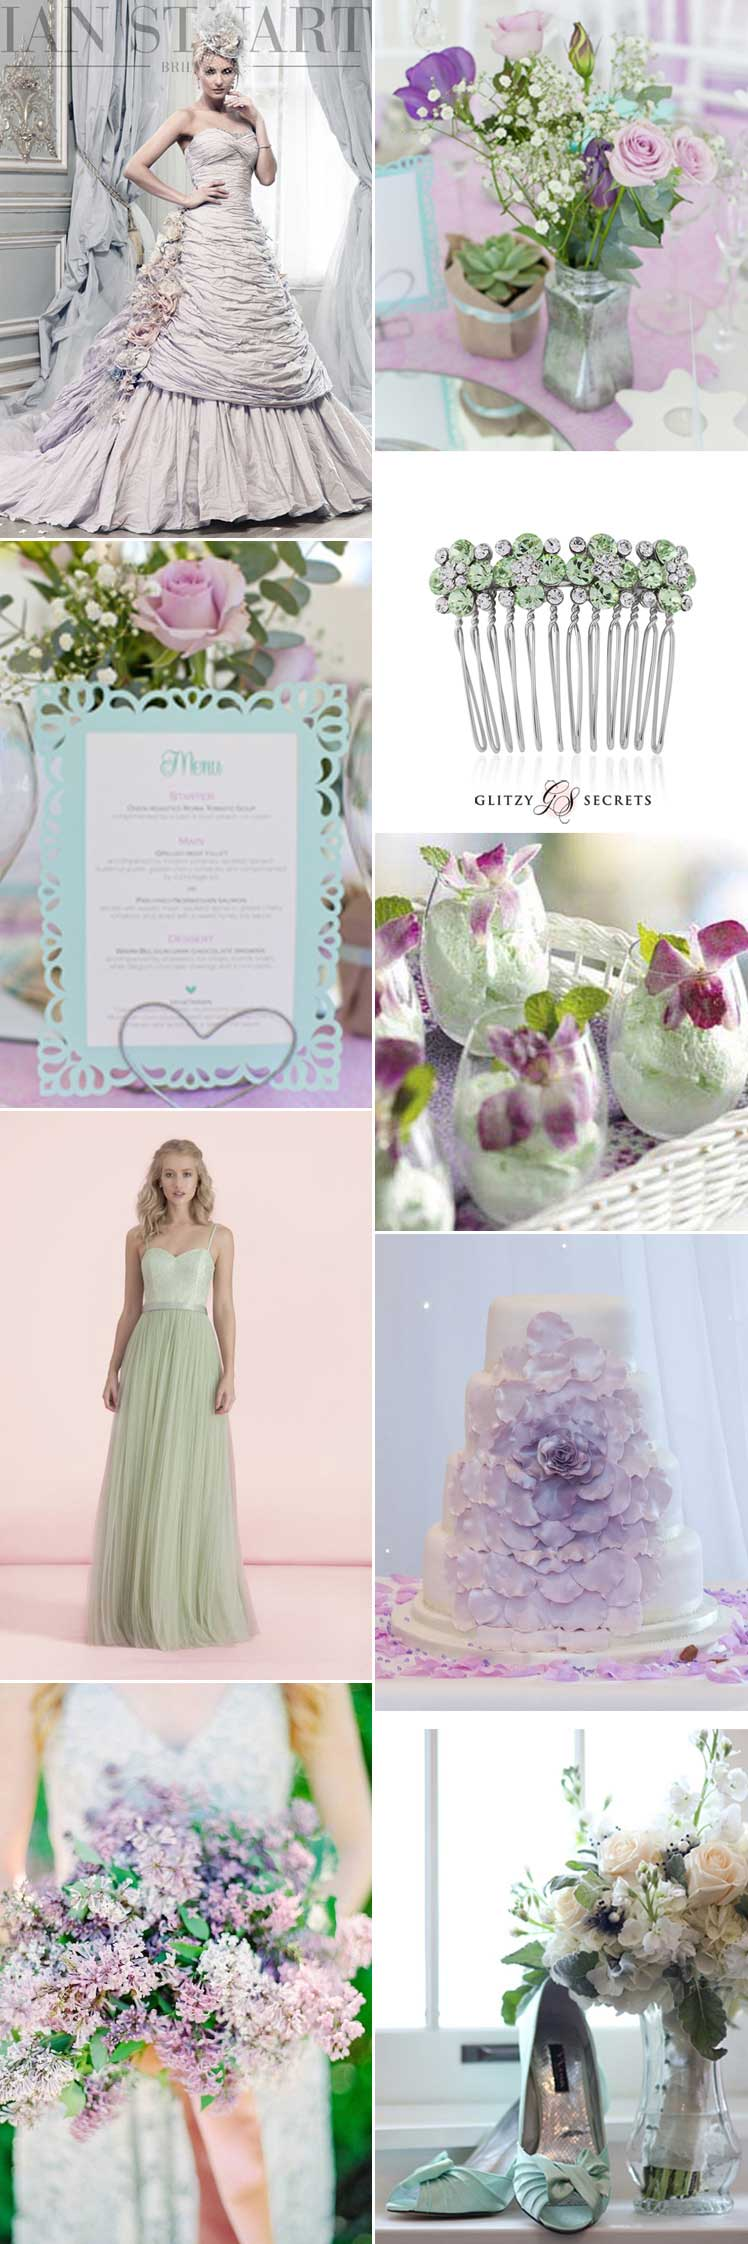 Inspiration for a lilac and mint wedding theme